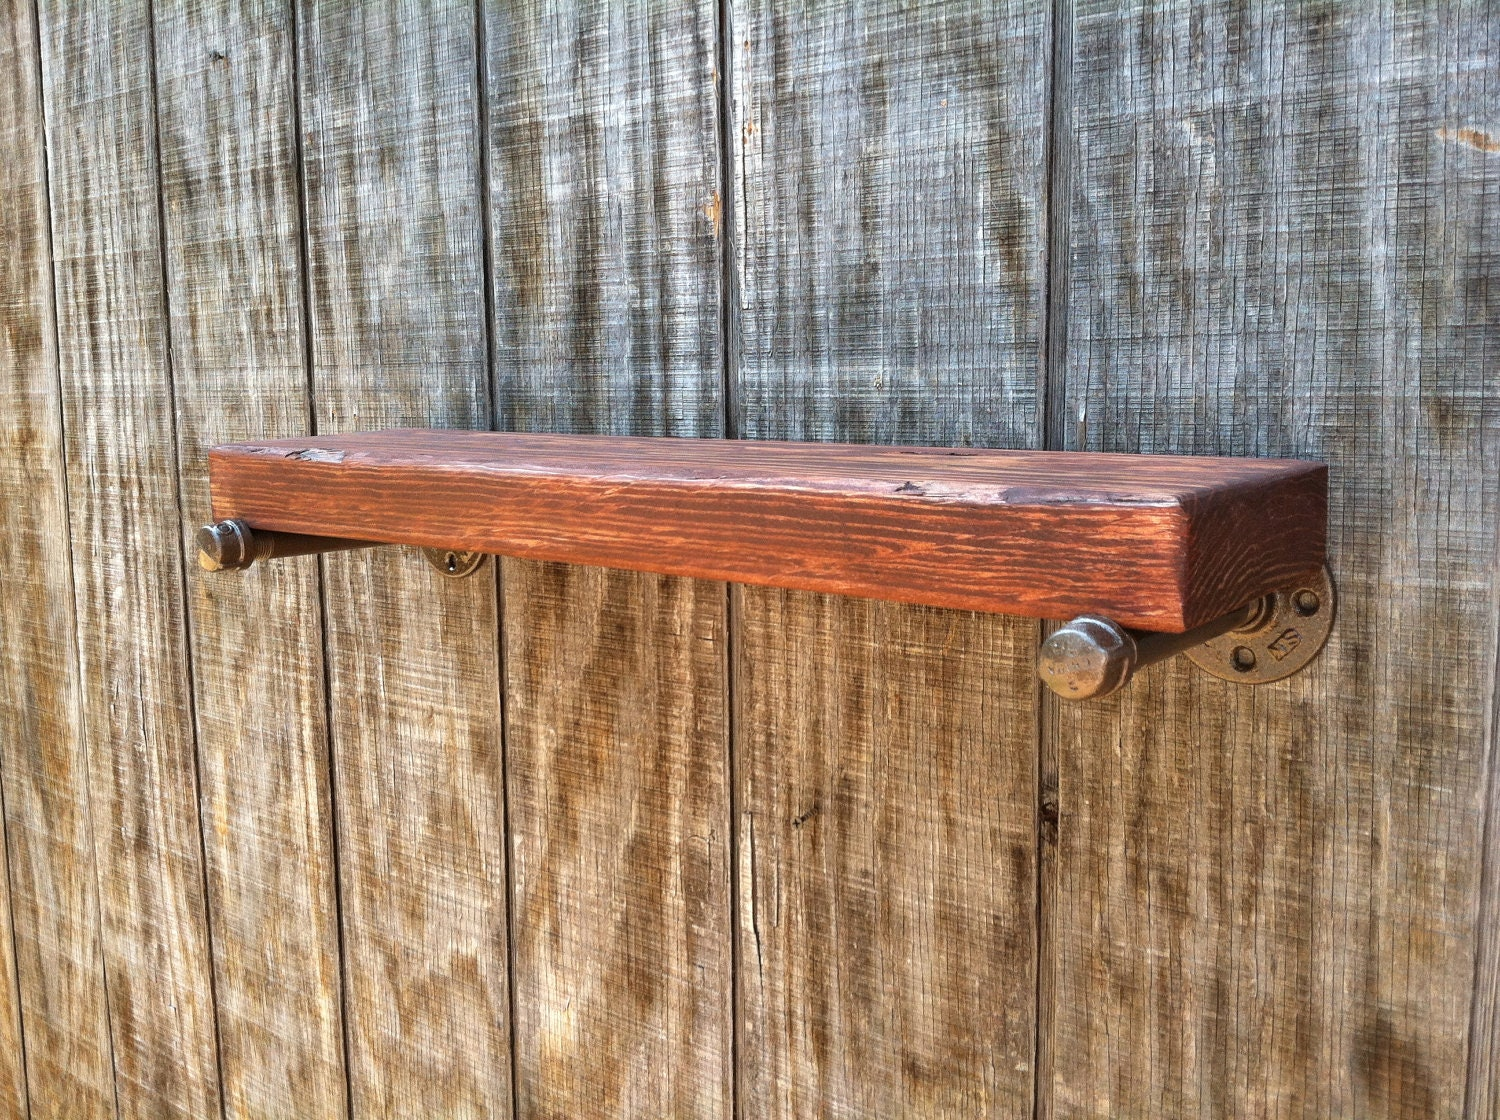 Very Impressive portraiture of Industrial salvage wood wall shelf with by RaysCustomWoodwork with #965335 color and 1500x1120 pixels